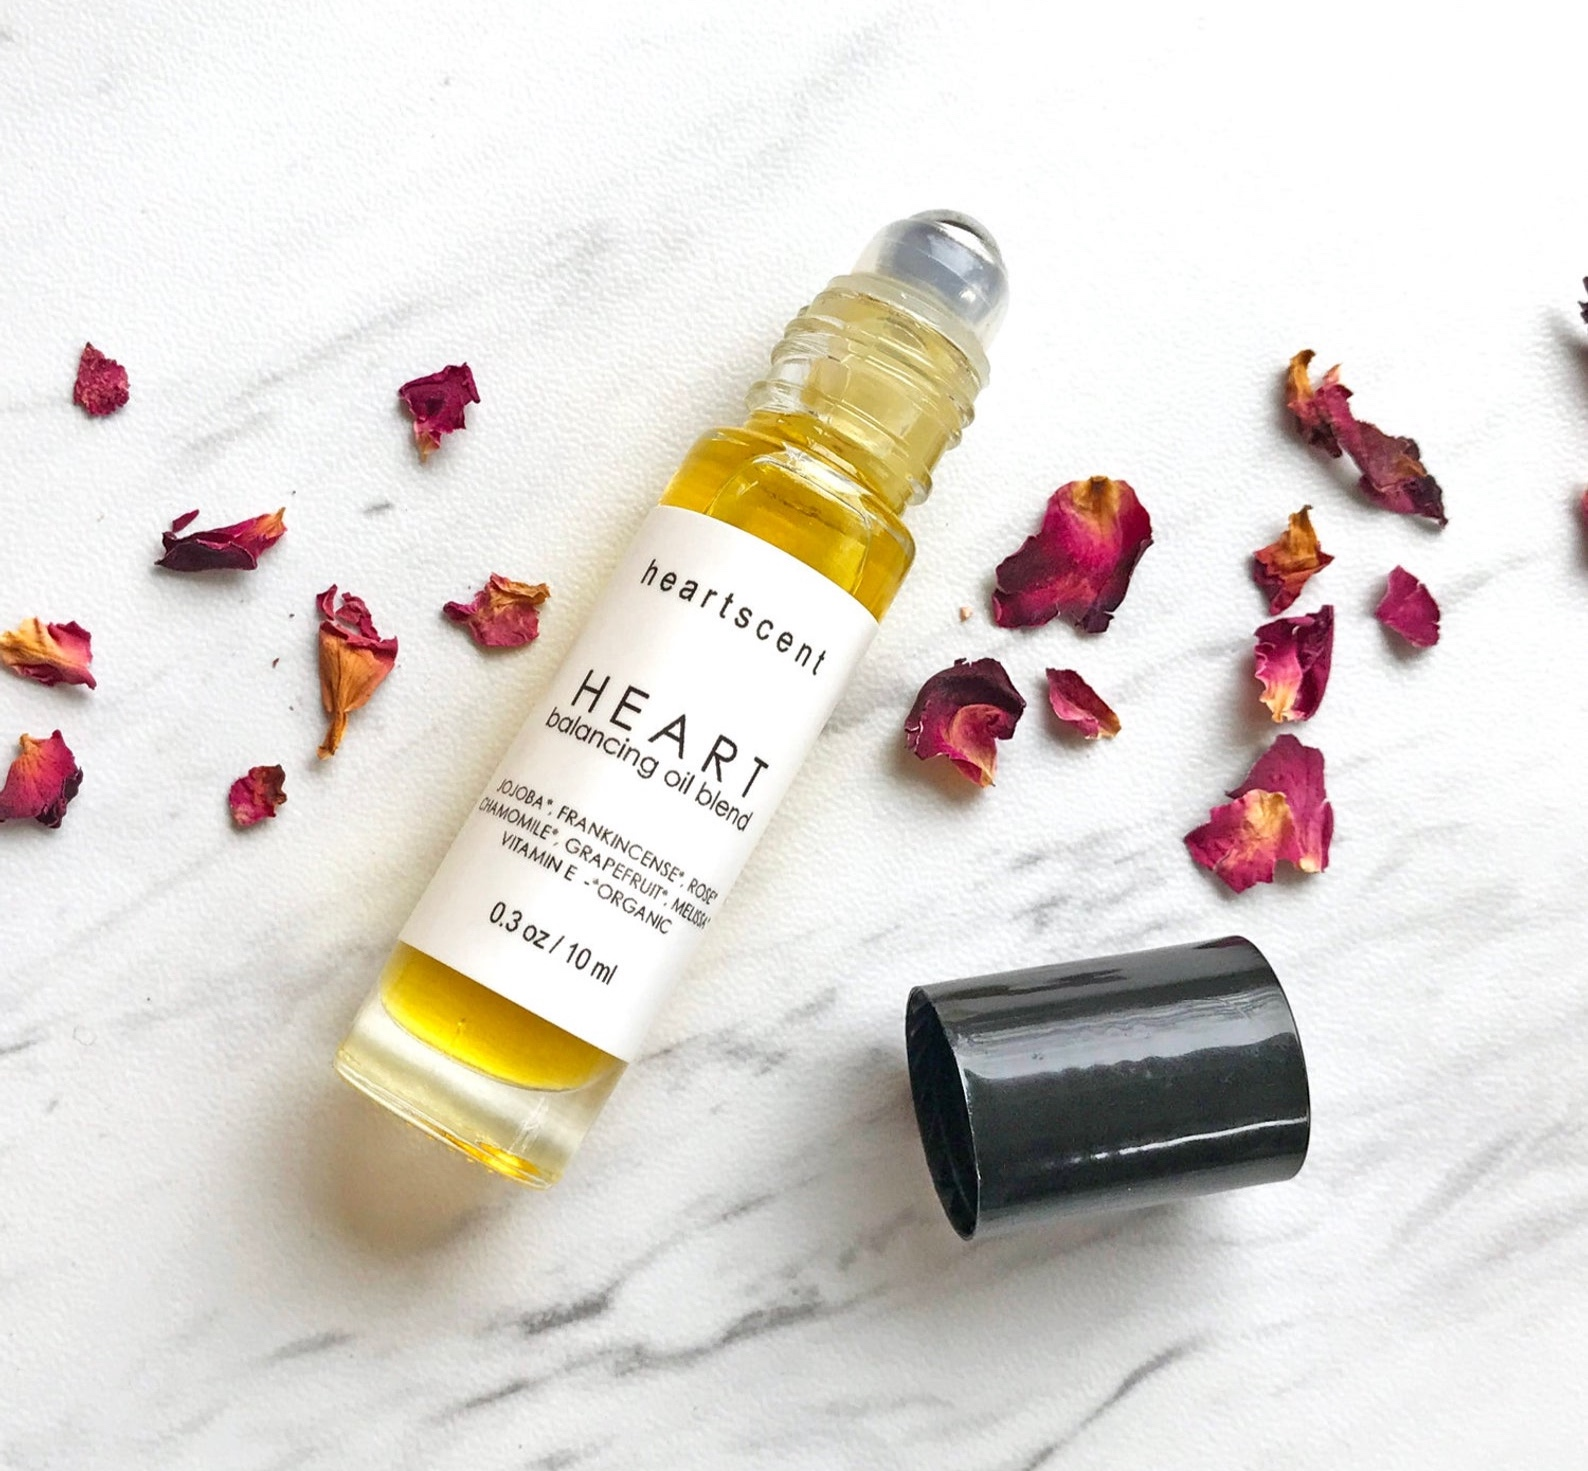 Heart Essential Oil Roller By Heart Scent